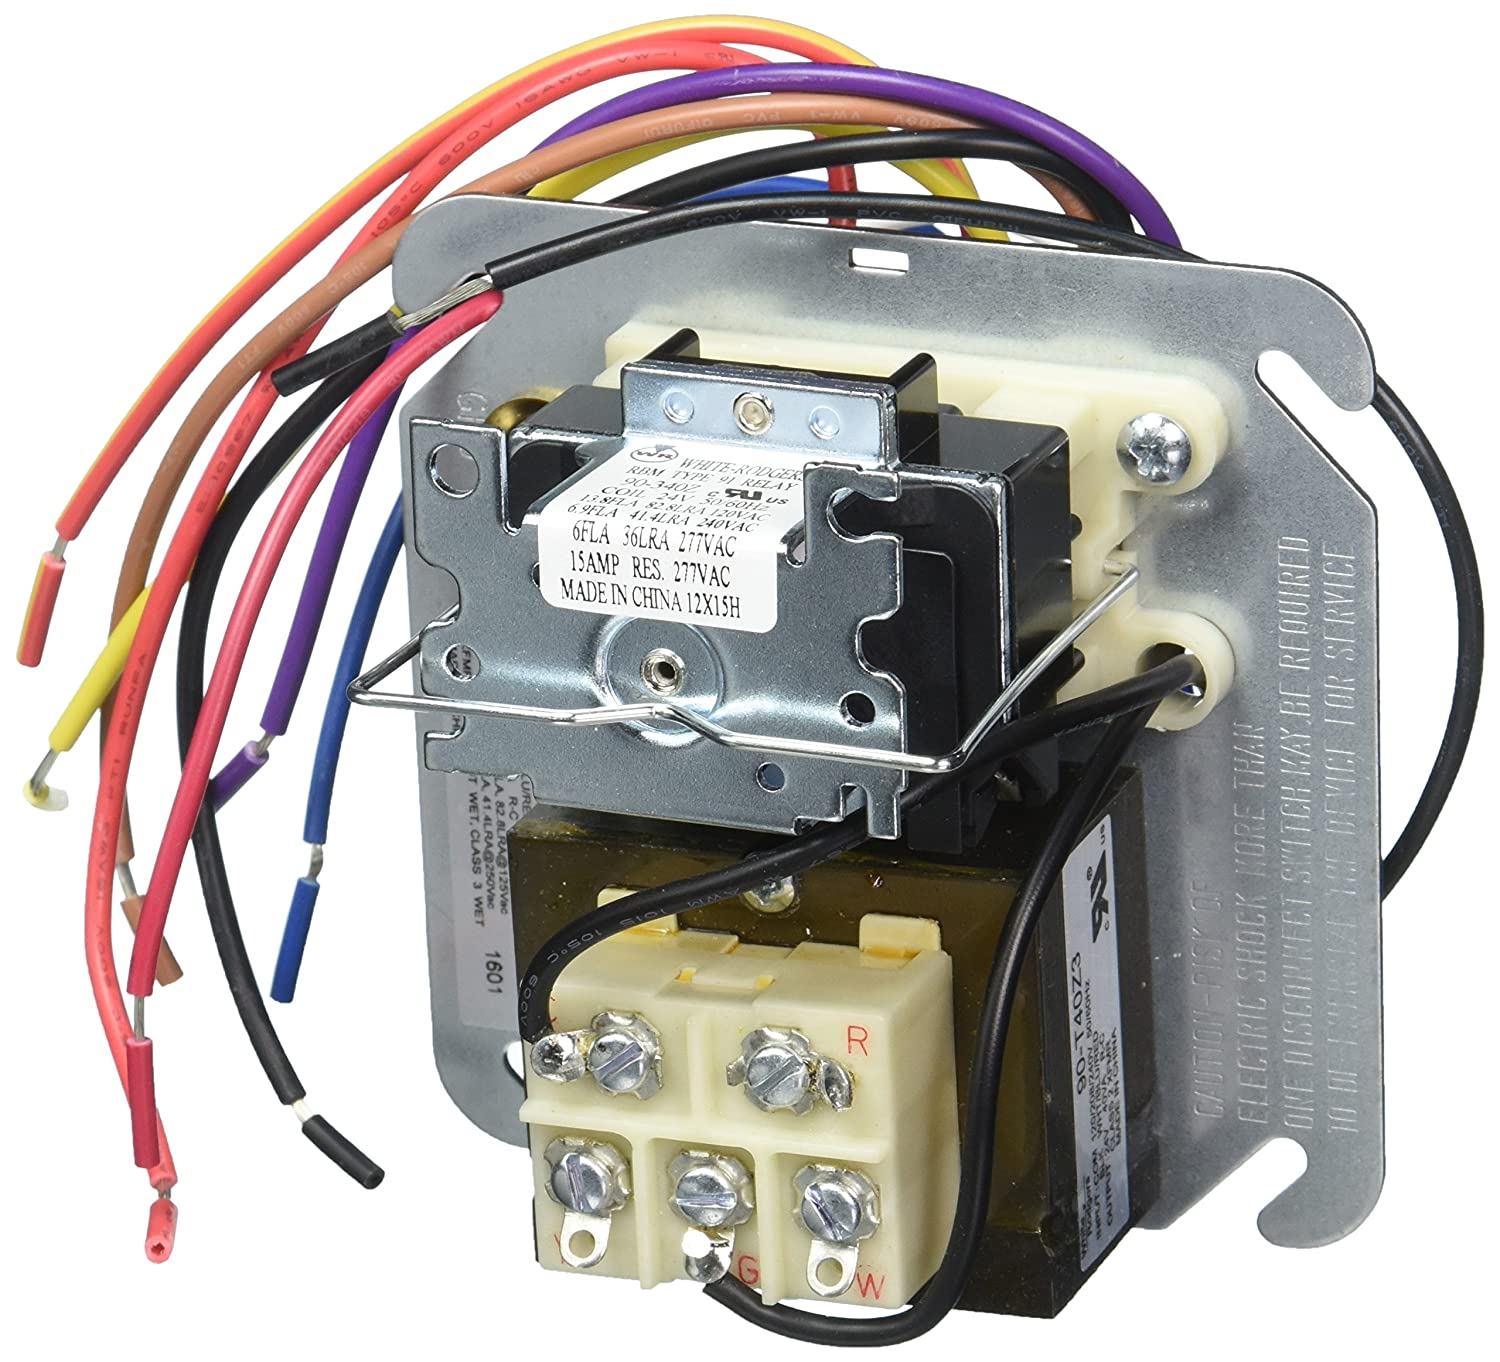 White Rodgers 90 130 Fan Control Center 503634 Home Nutone 769rft Wiring Diagram For A Bathroom Kitchen